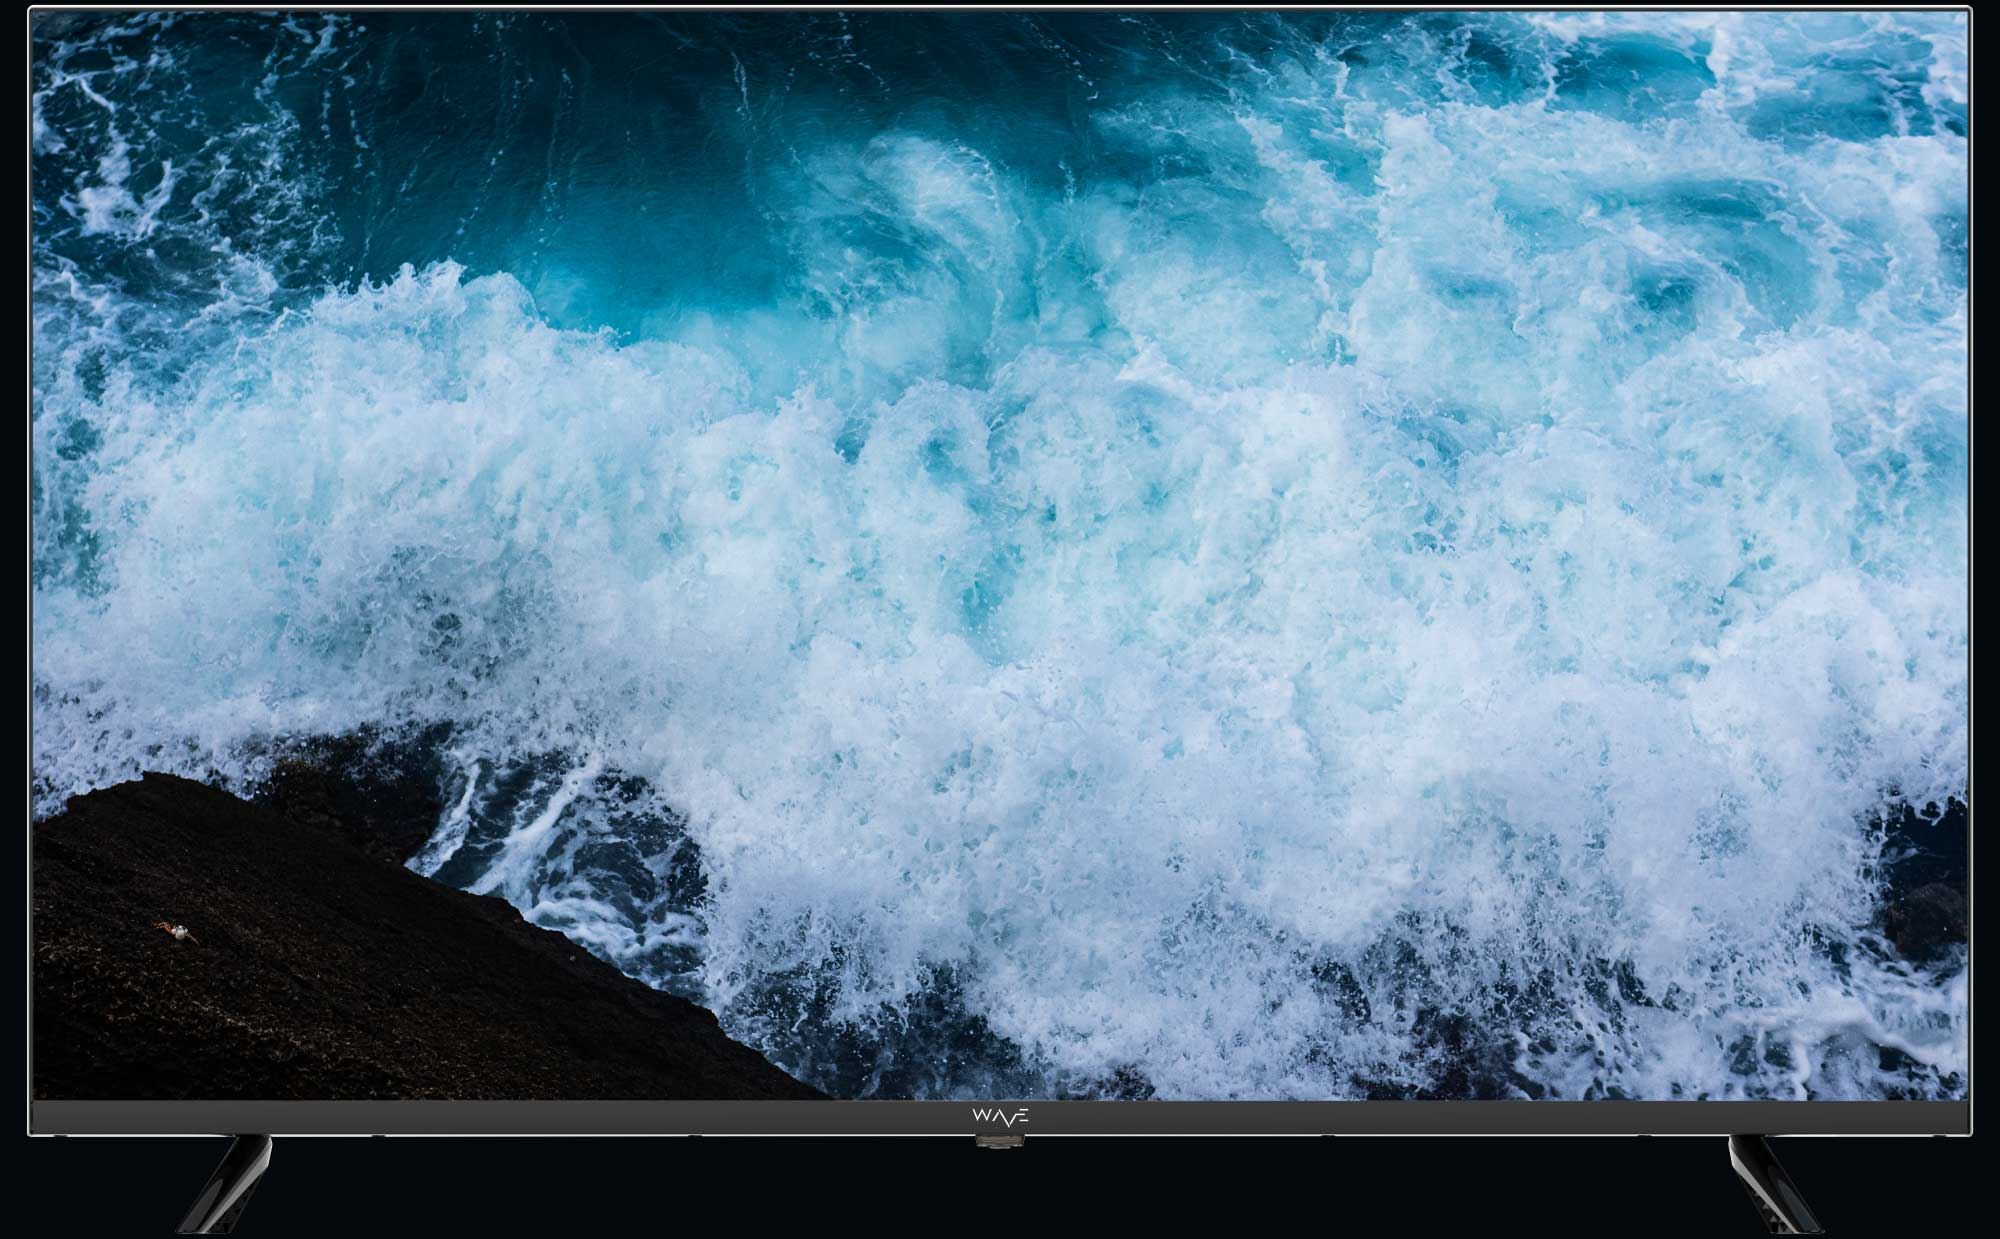 Experience the gorgeous frameless screen of WAVE Electronics best seller STREAM